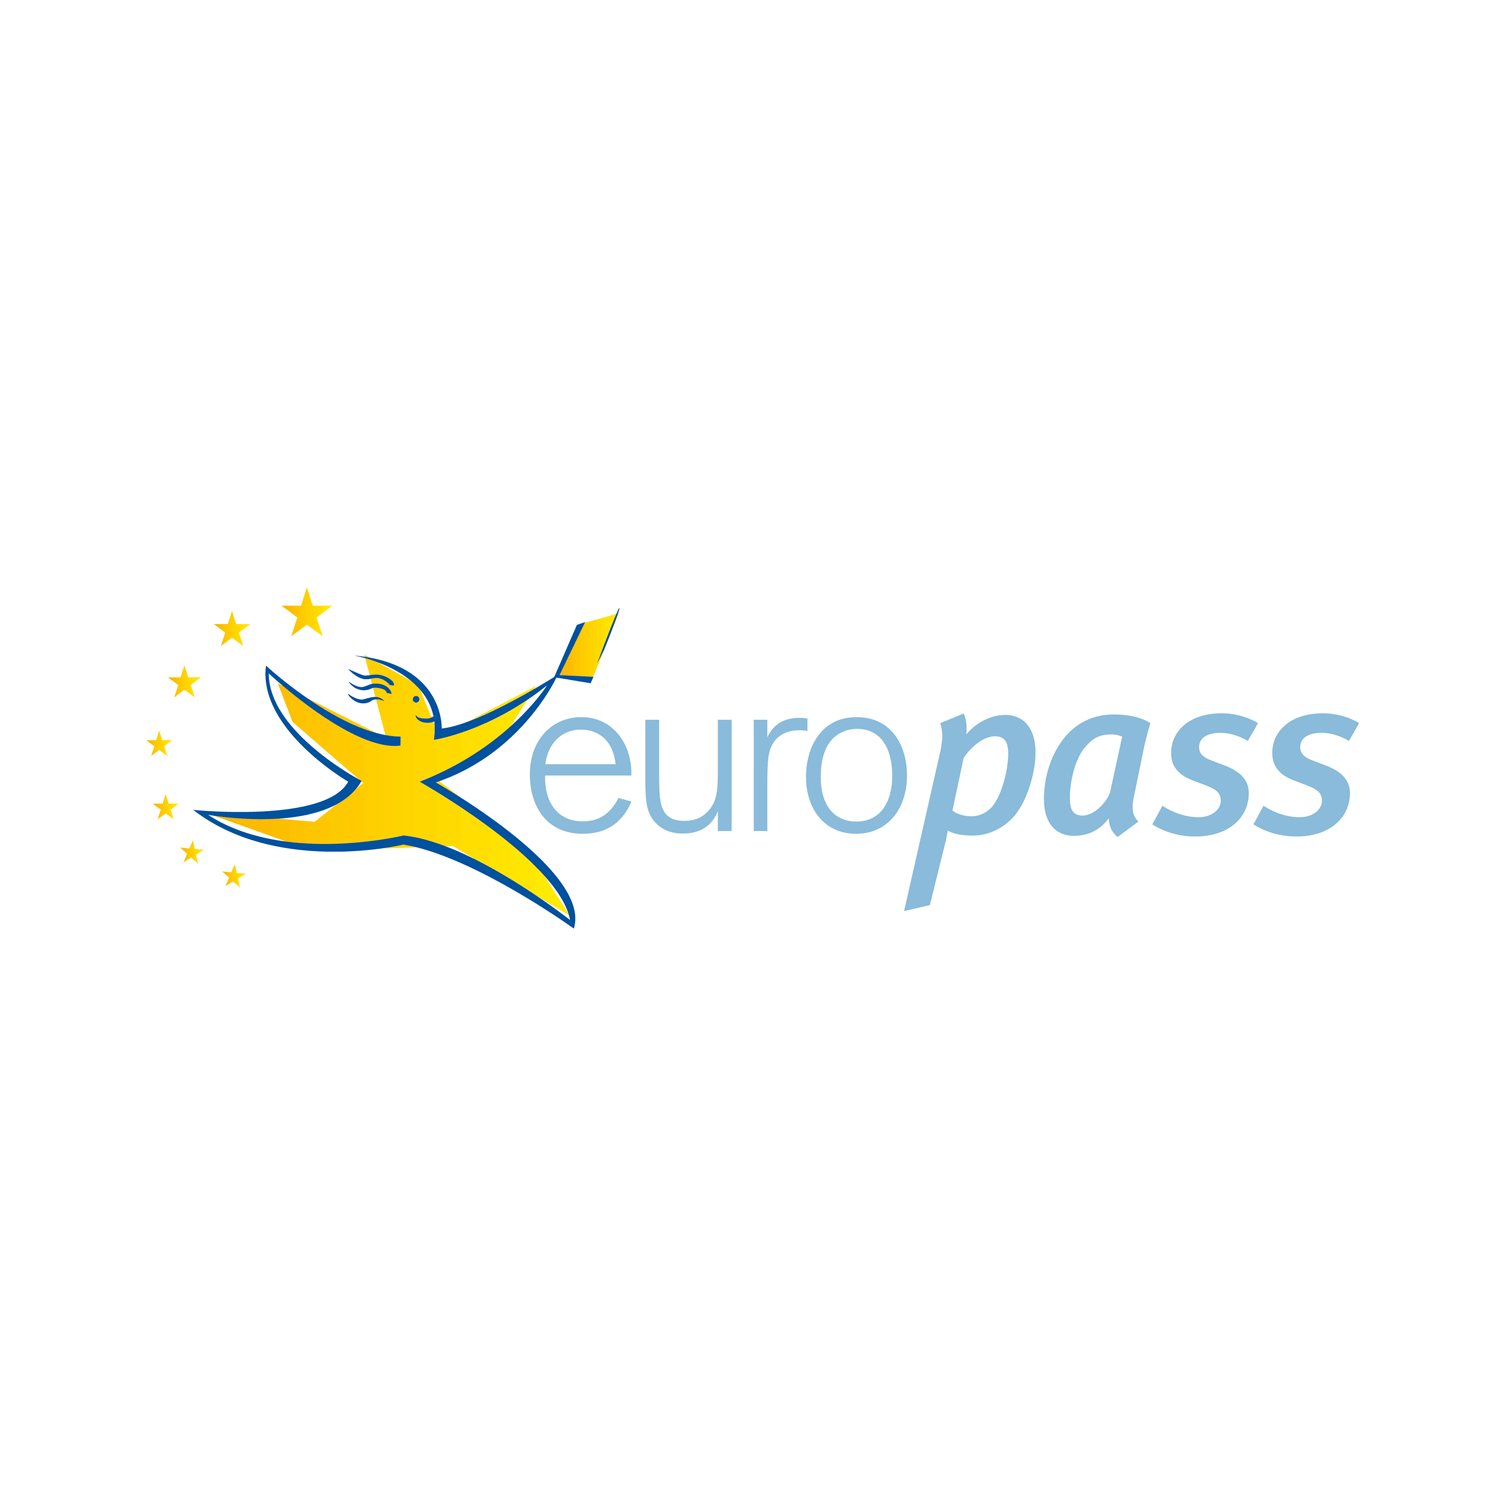 europass-logo-for-facebook